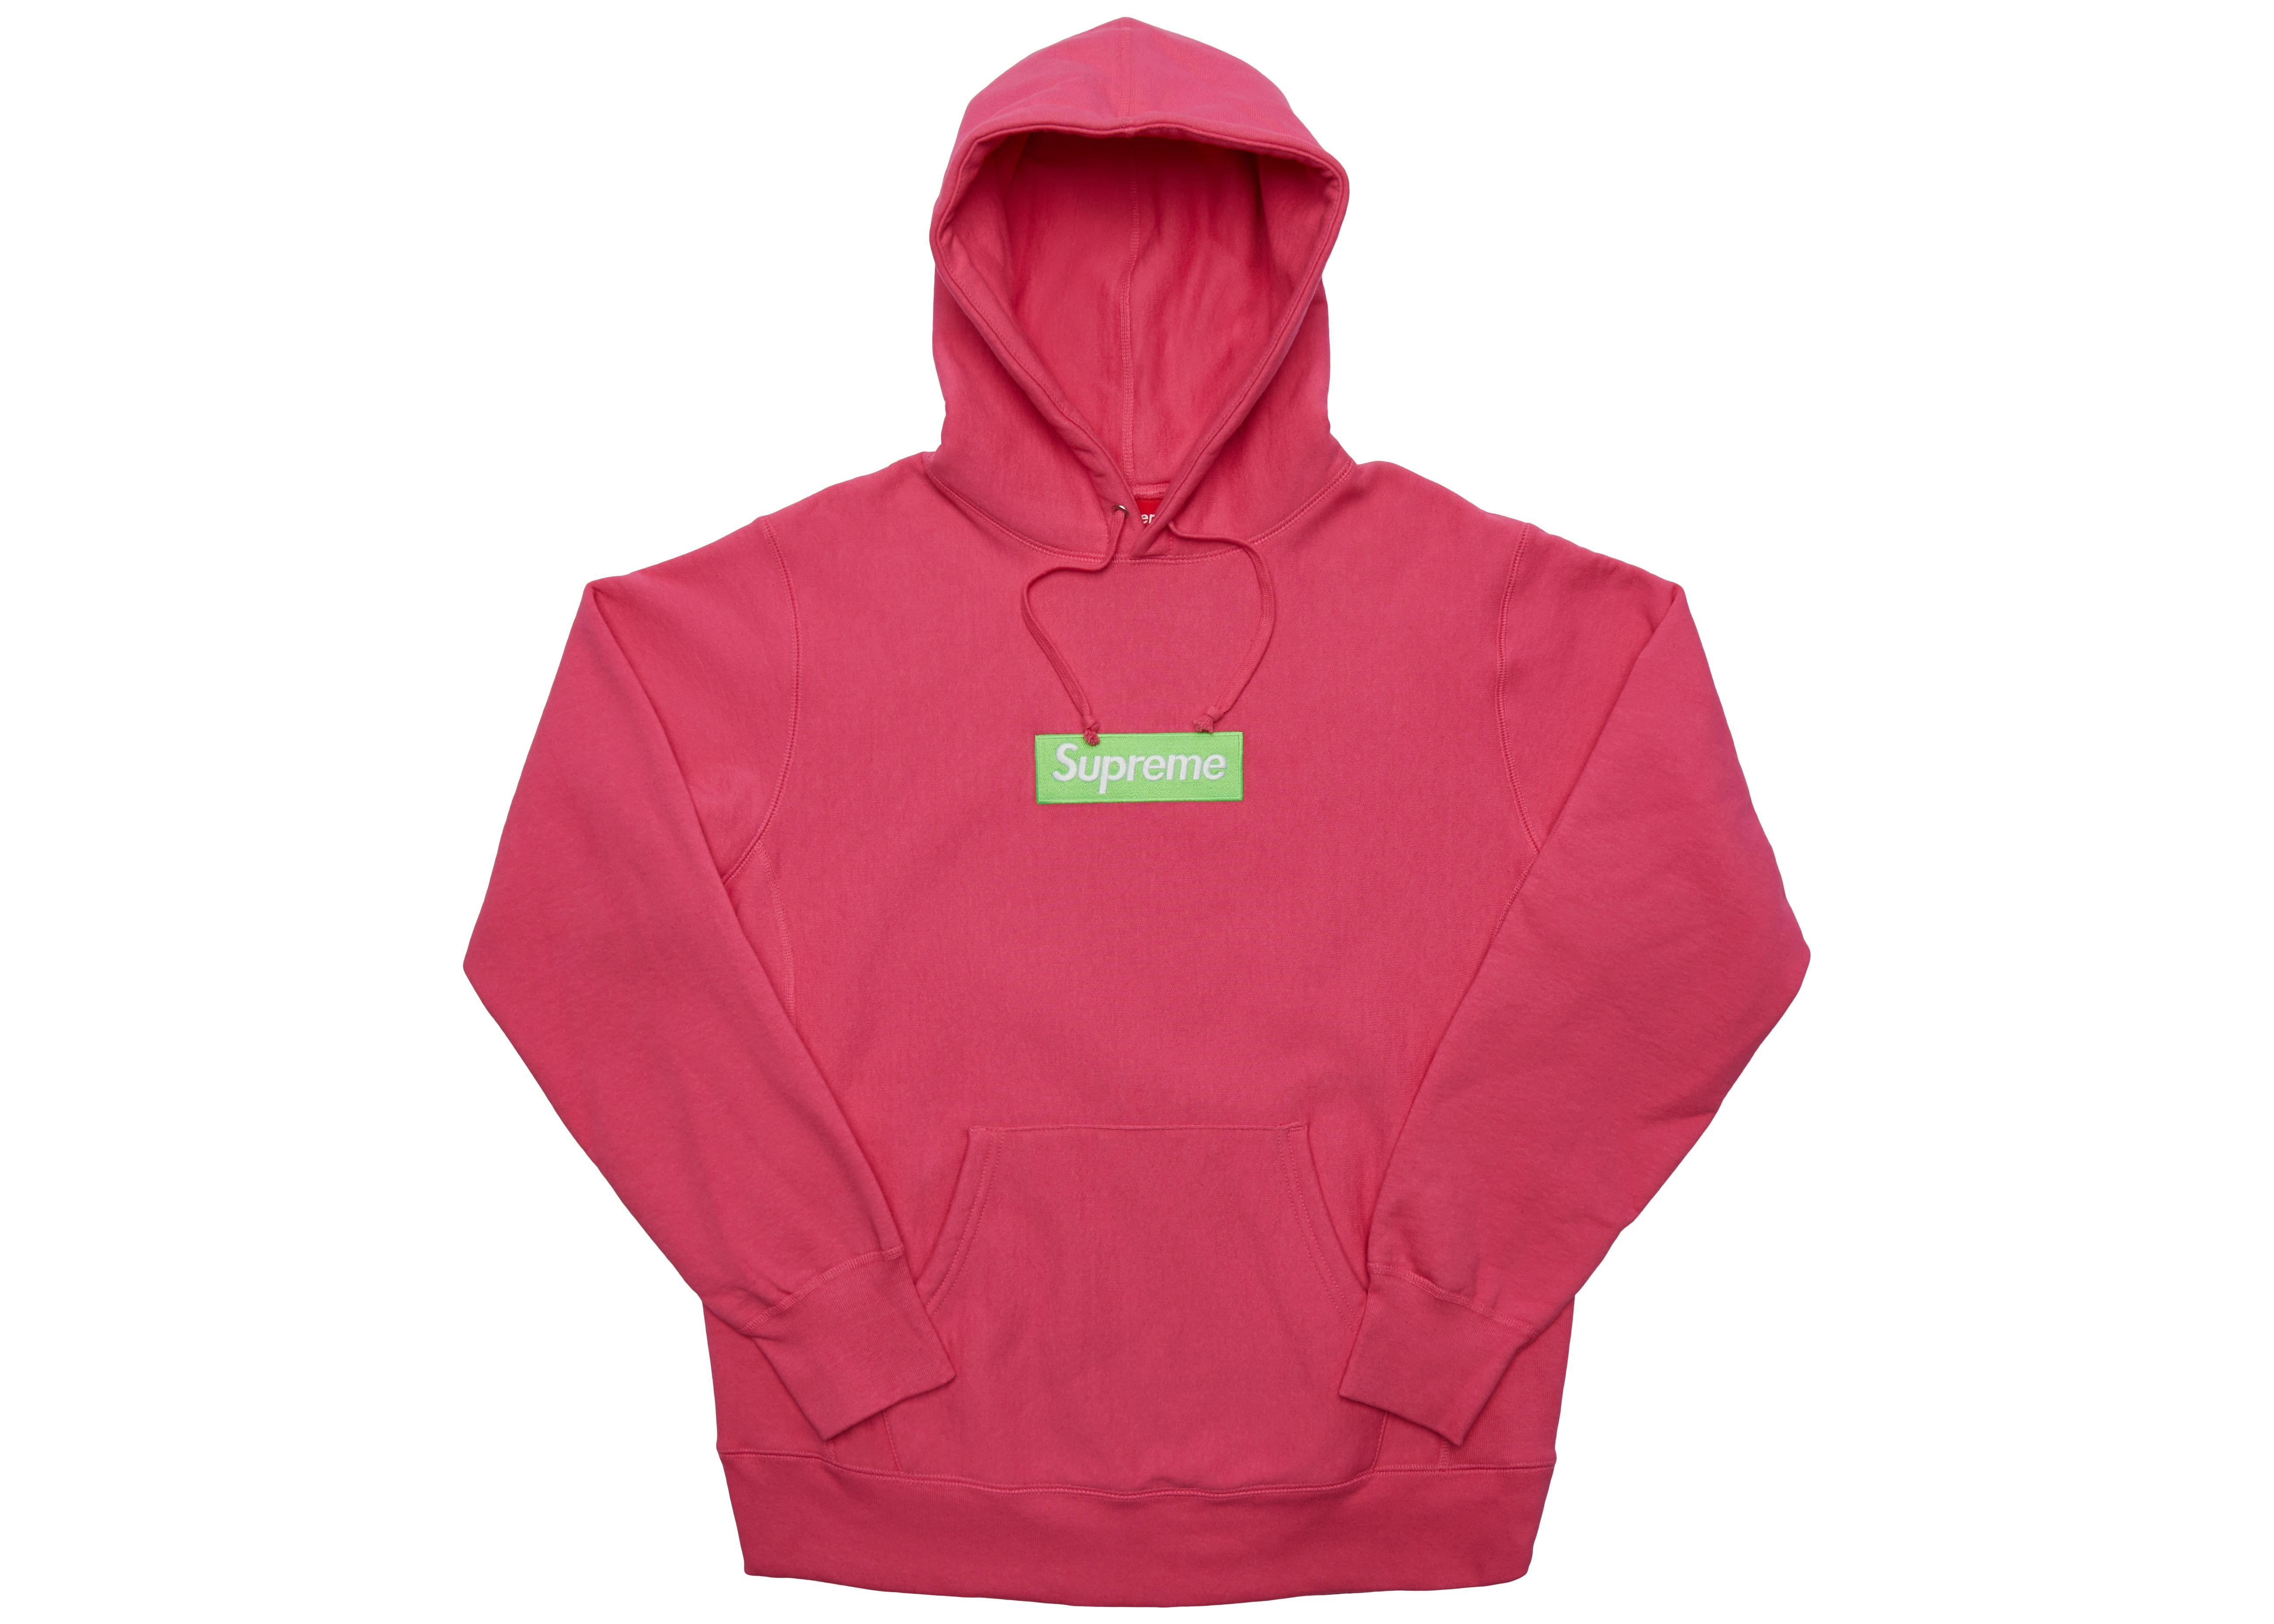 e111a60d Supreme Box Logo Hooded Sweatshirt (fw17) Magenta in Pink for Men - Lyst